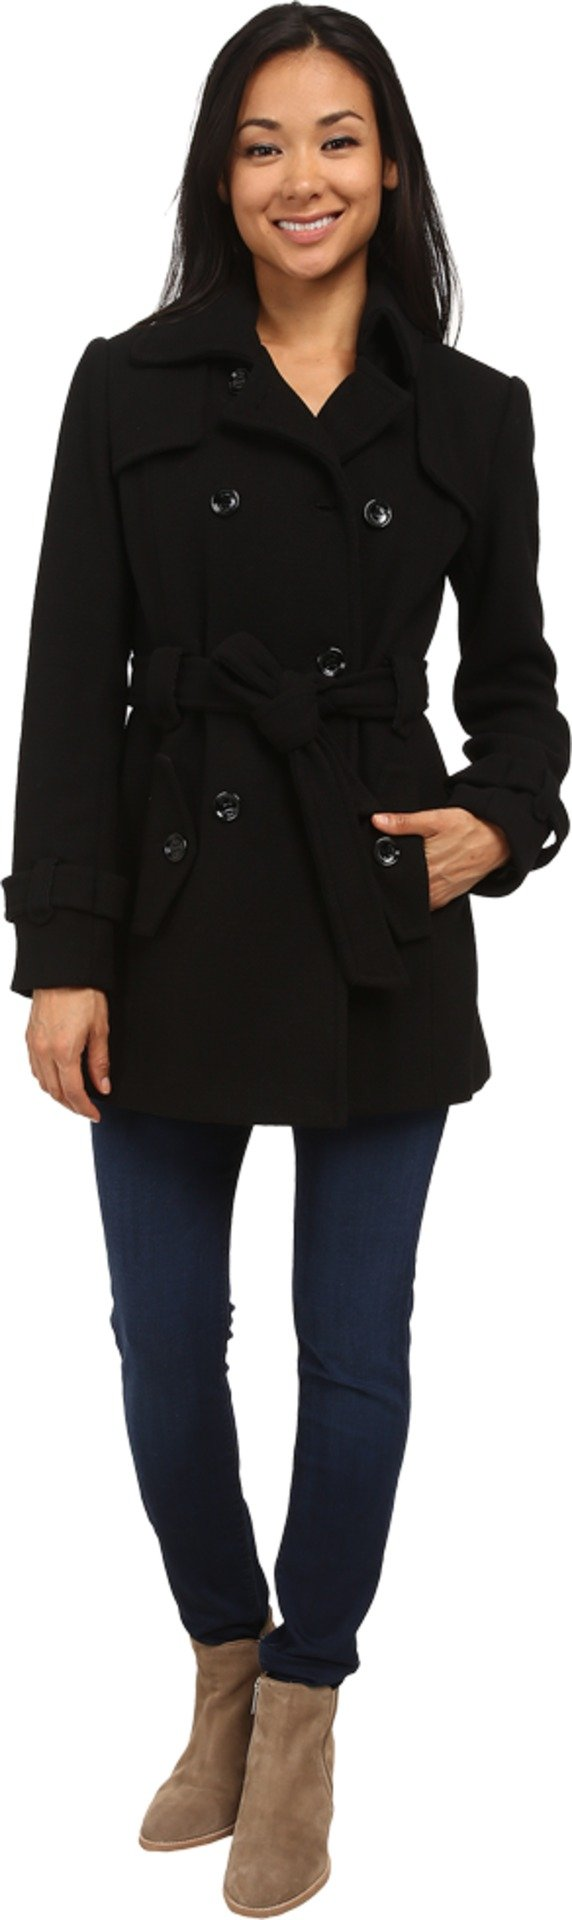 Calvin Klein Women's Double Breasted Belted Wool Trench Coat Black Outerwear XL (US 14)